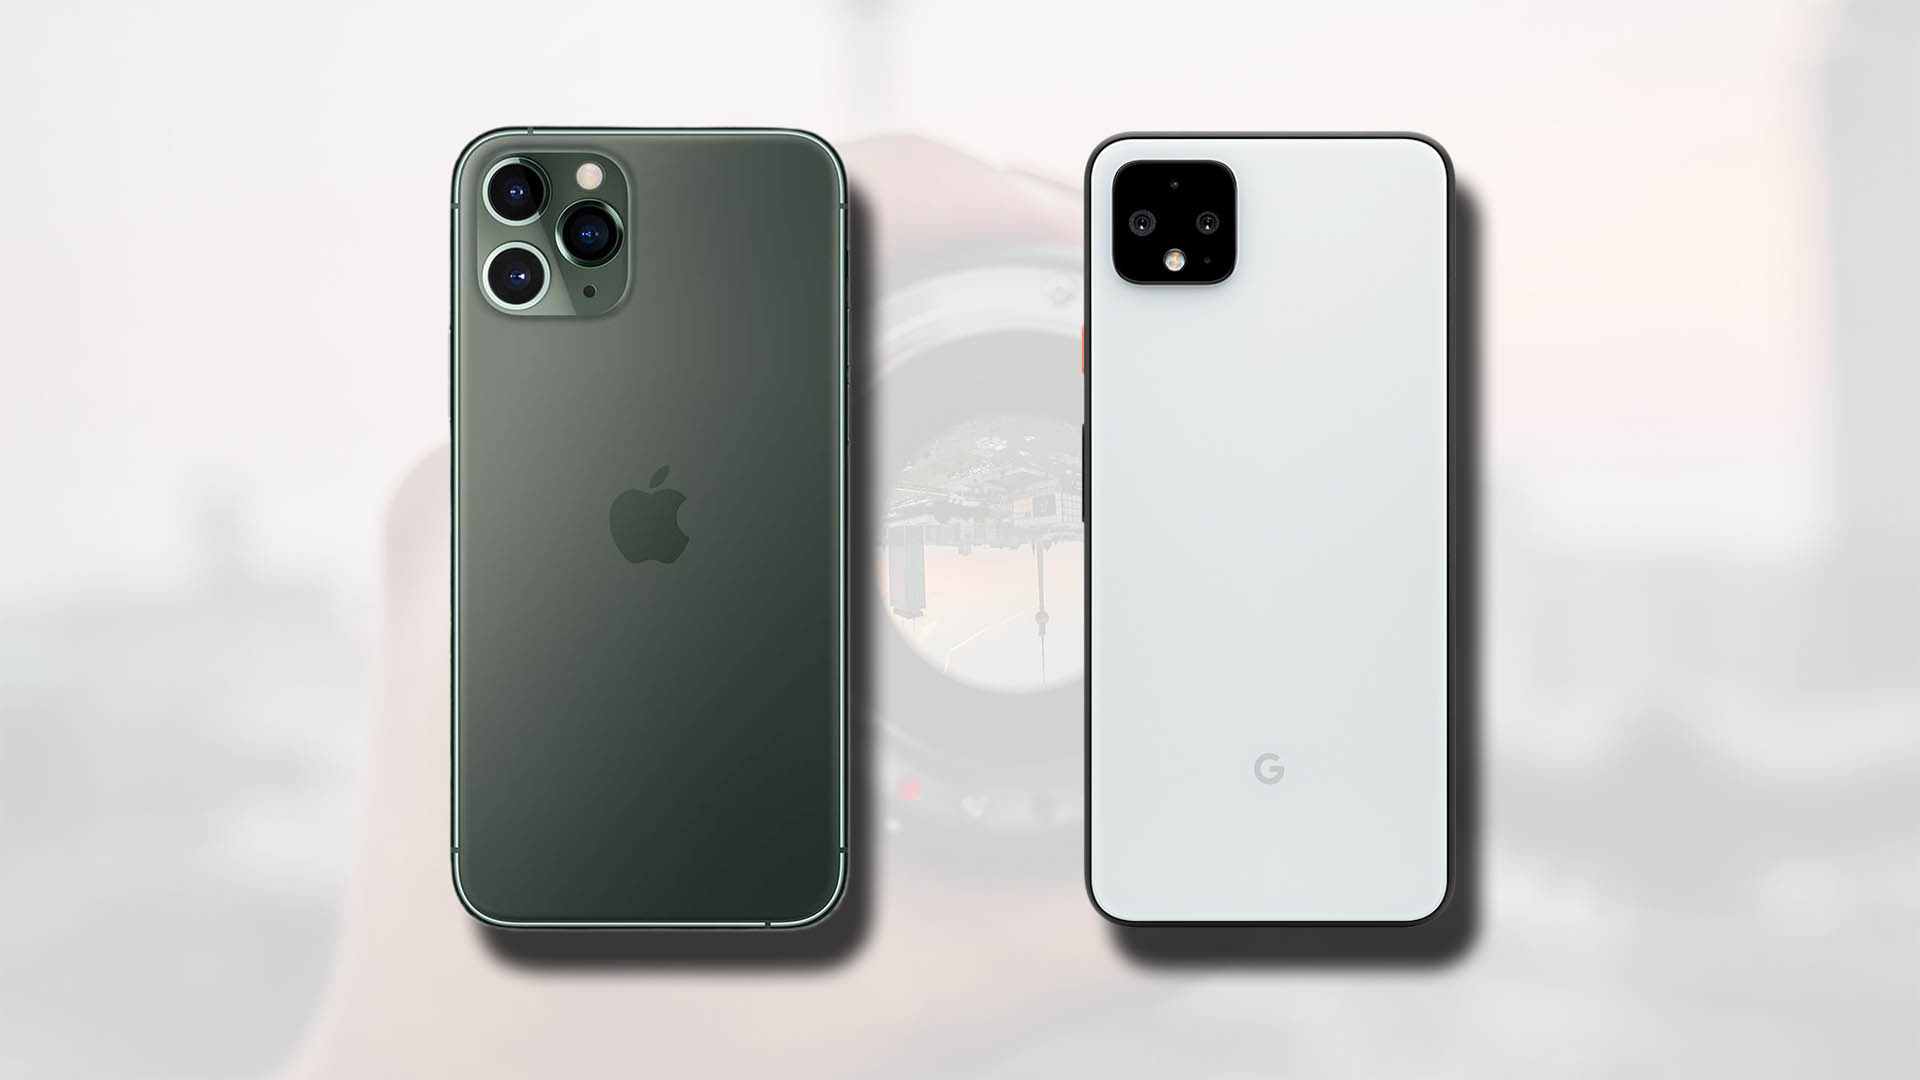 Iphone 11 Pro Vs Pixel 4 Camera Comparison Which One Wins